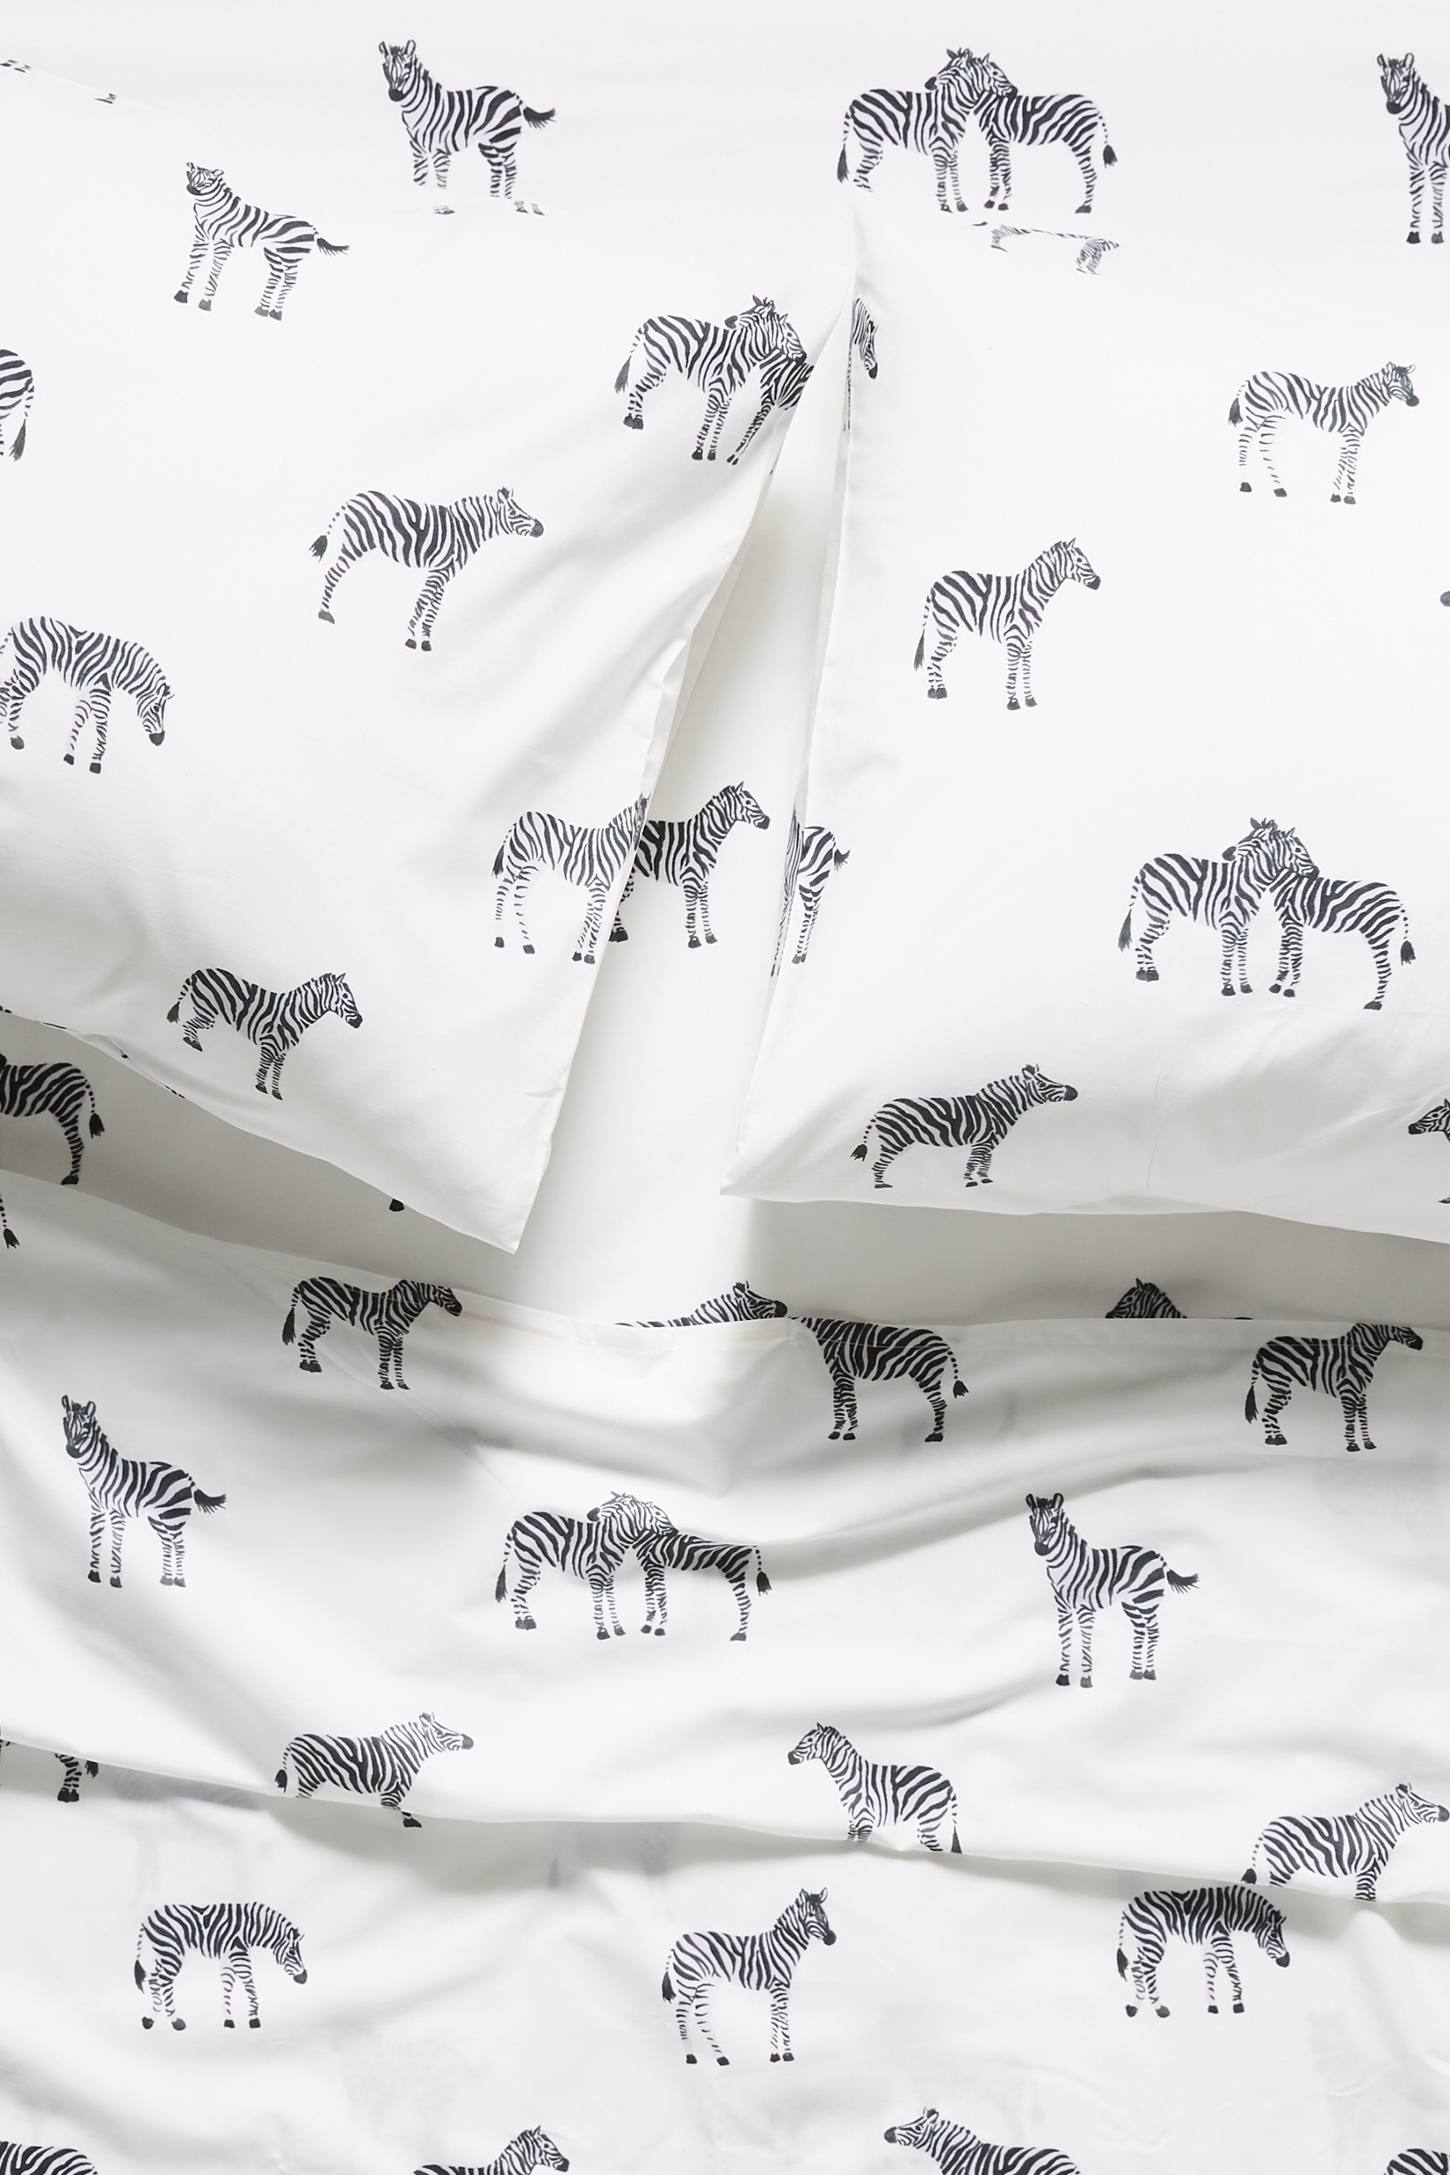 Printed Zebra Sheet Set